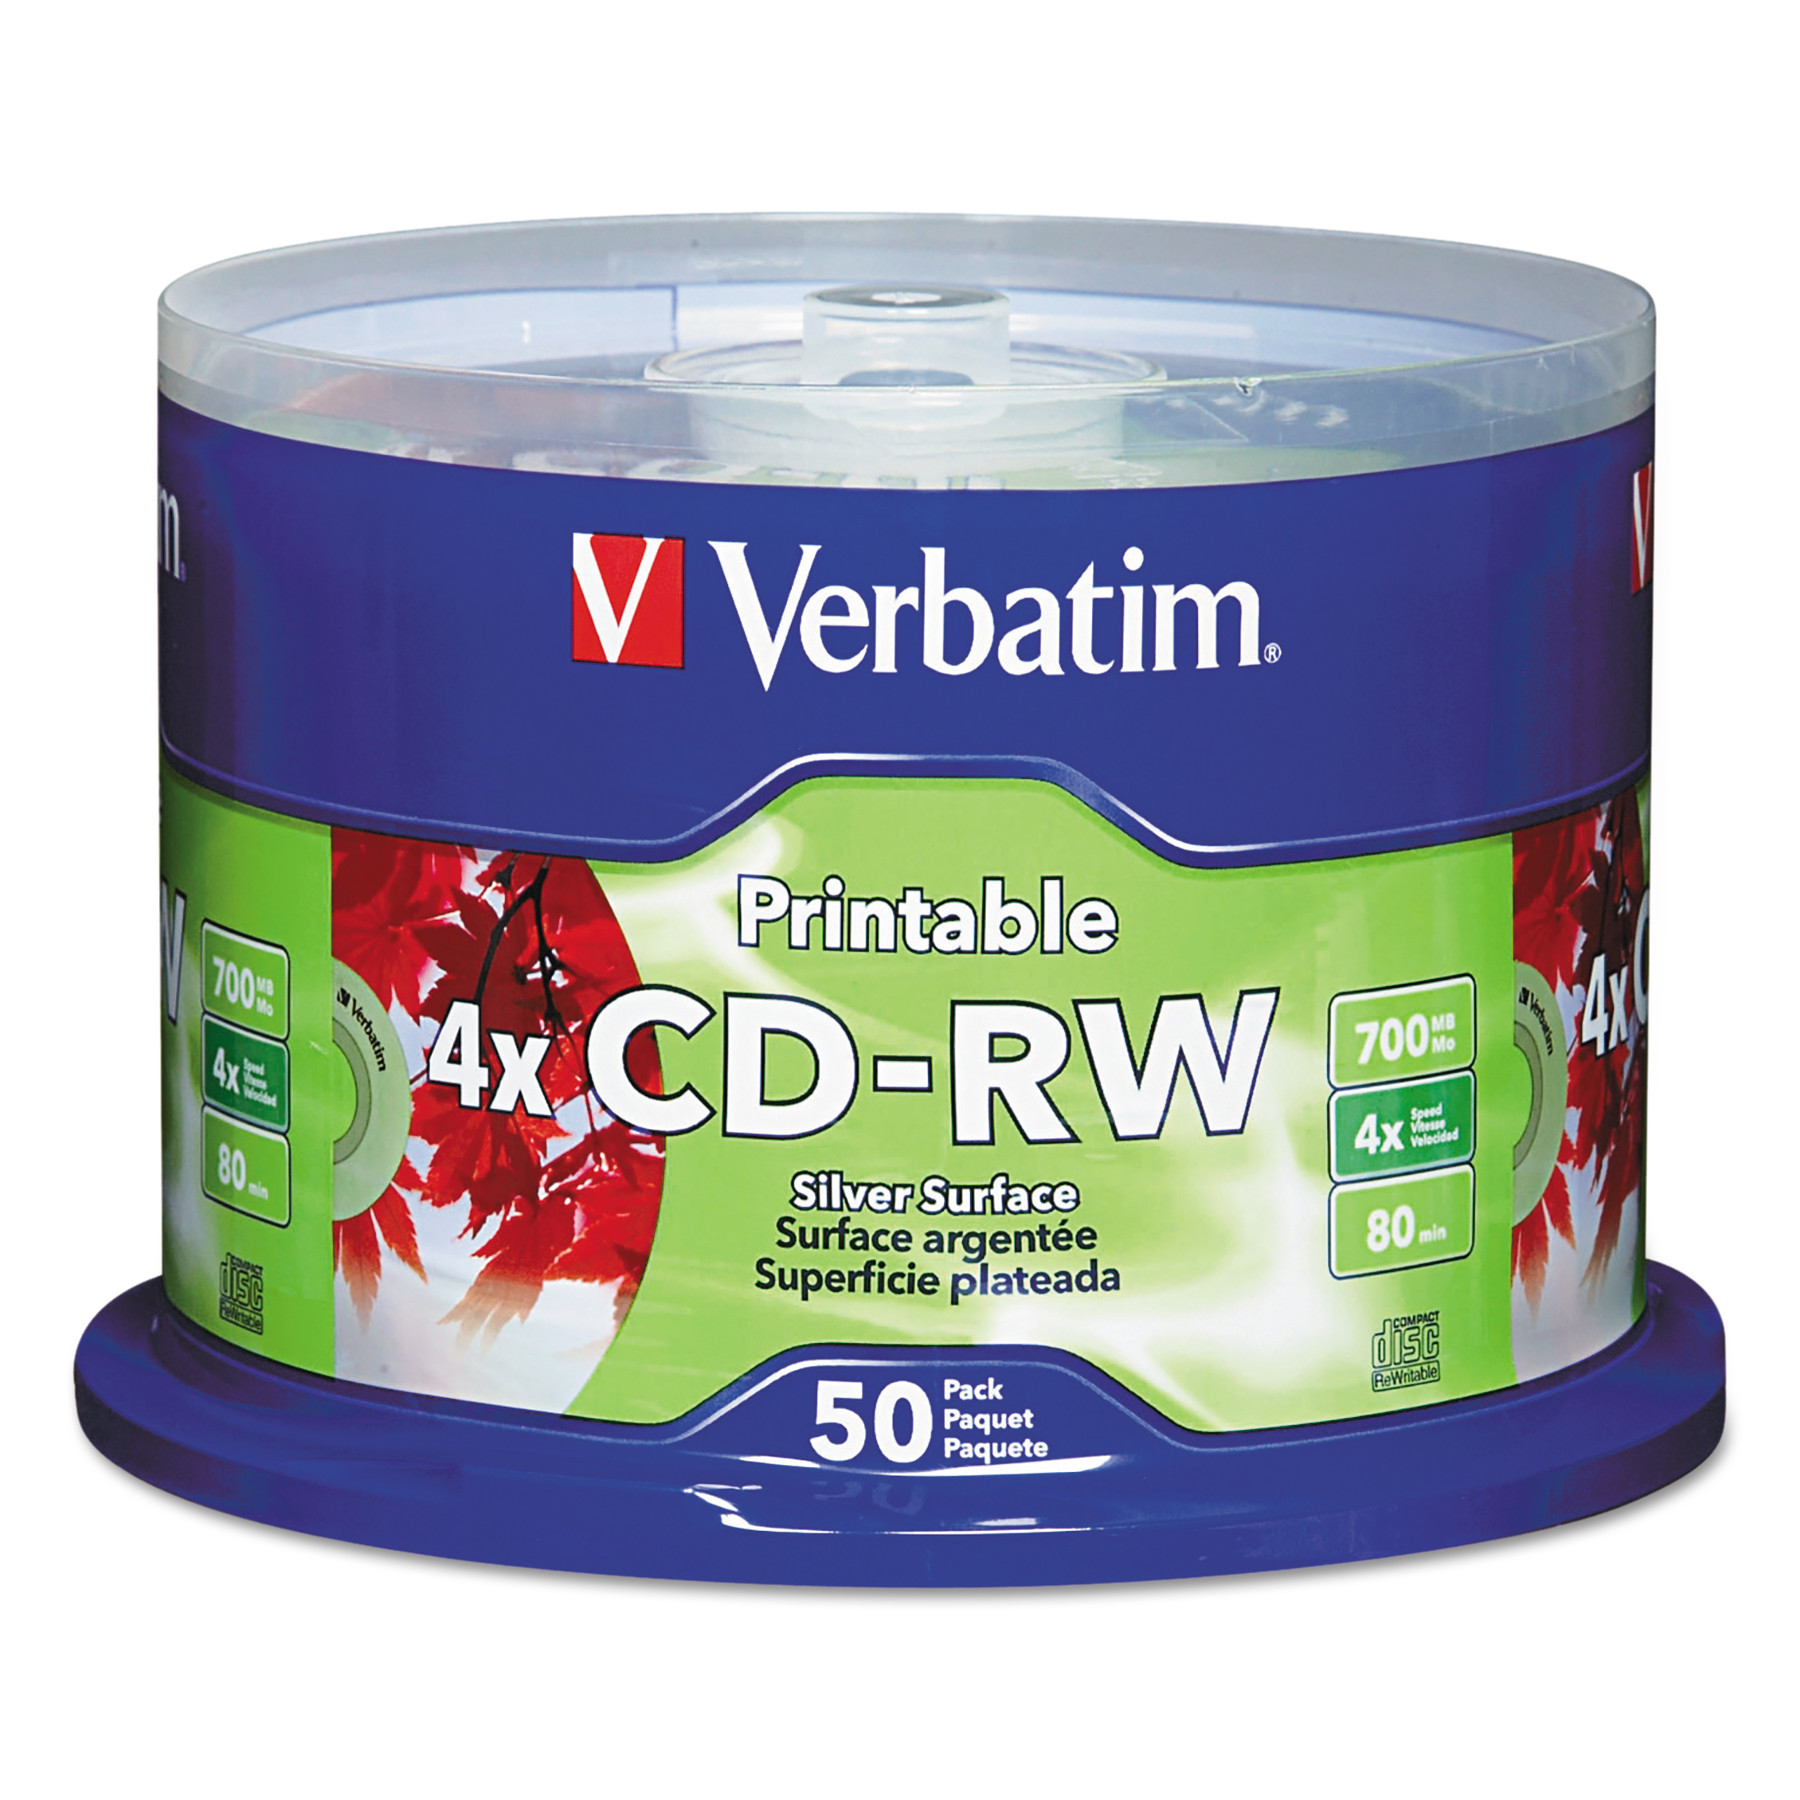 Verbatim CD-RW Discs, Printable, 700MB/80min, 4x, Spindle, Silver, 50/Pack -VER95159